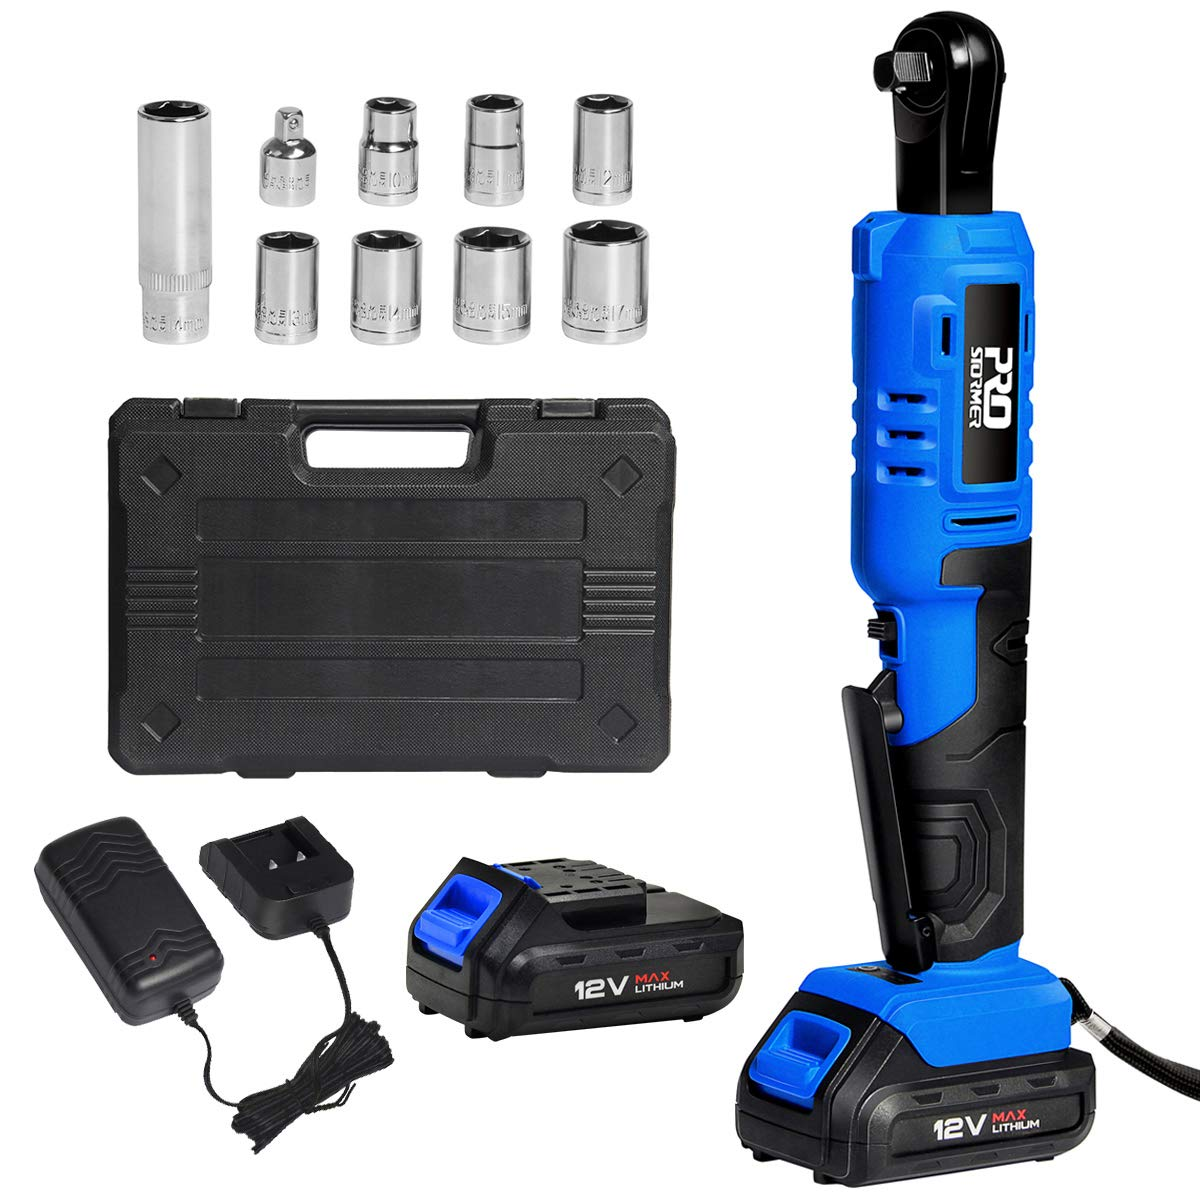 Cordless 3 8 Ratchet Wrench Set with 2PCS 2000mAh Lithium-Ion Batteries and Charger, PROSTORMER 12V Power Electric Ratchet Kit with 9-Piece Wrench Sockets and Toolbox